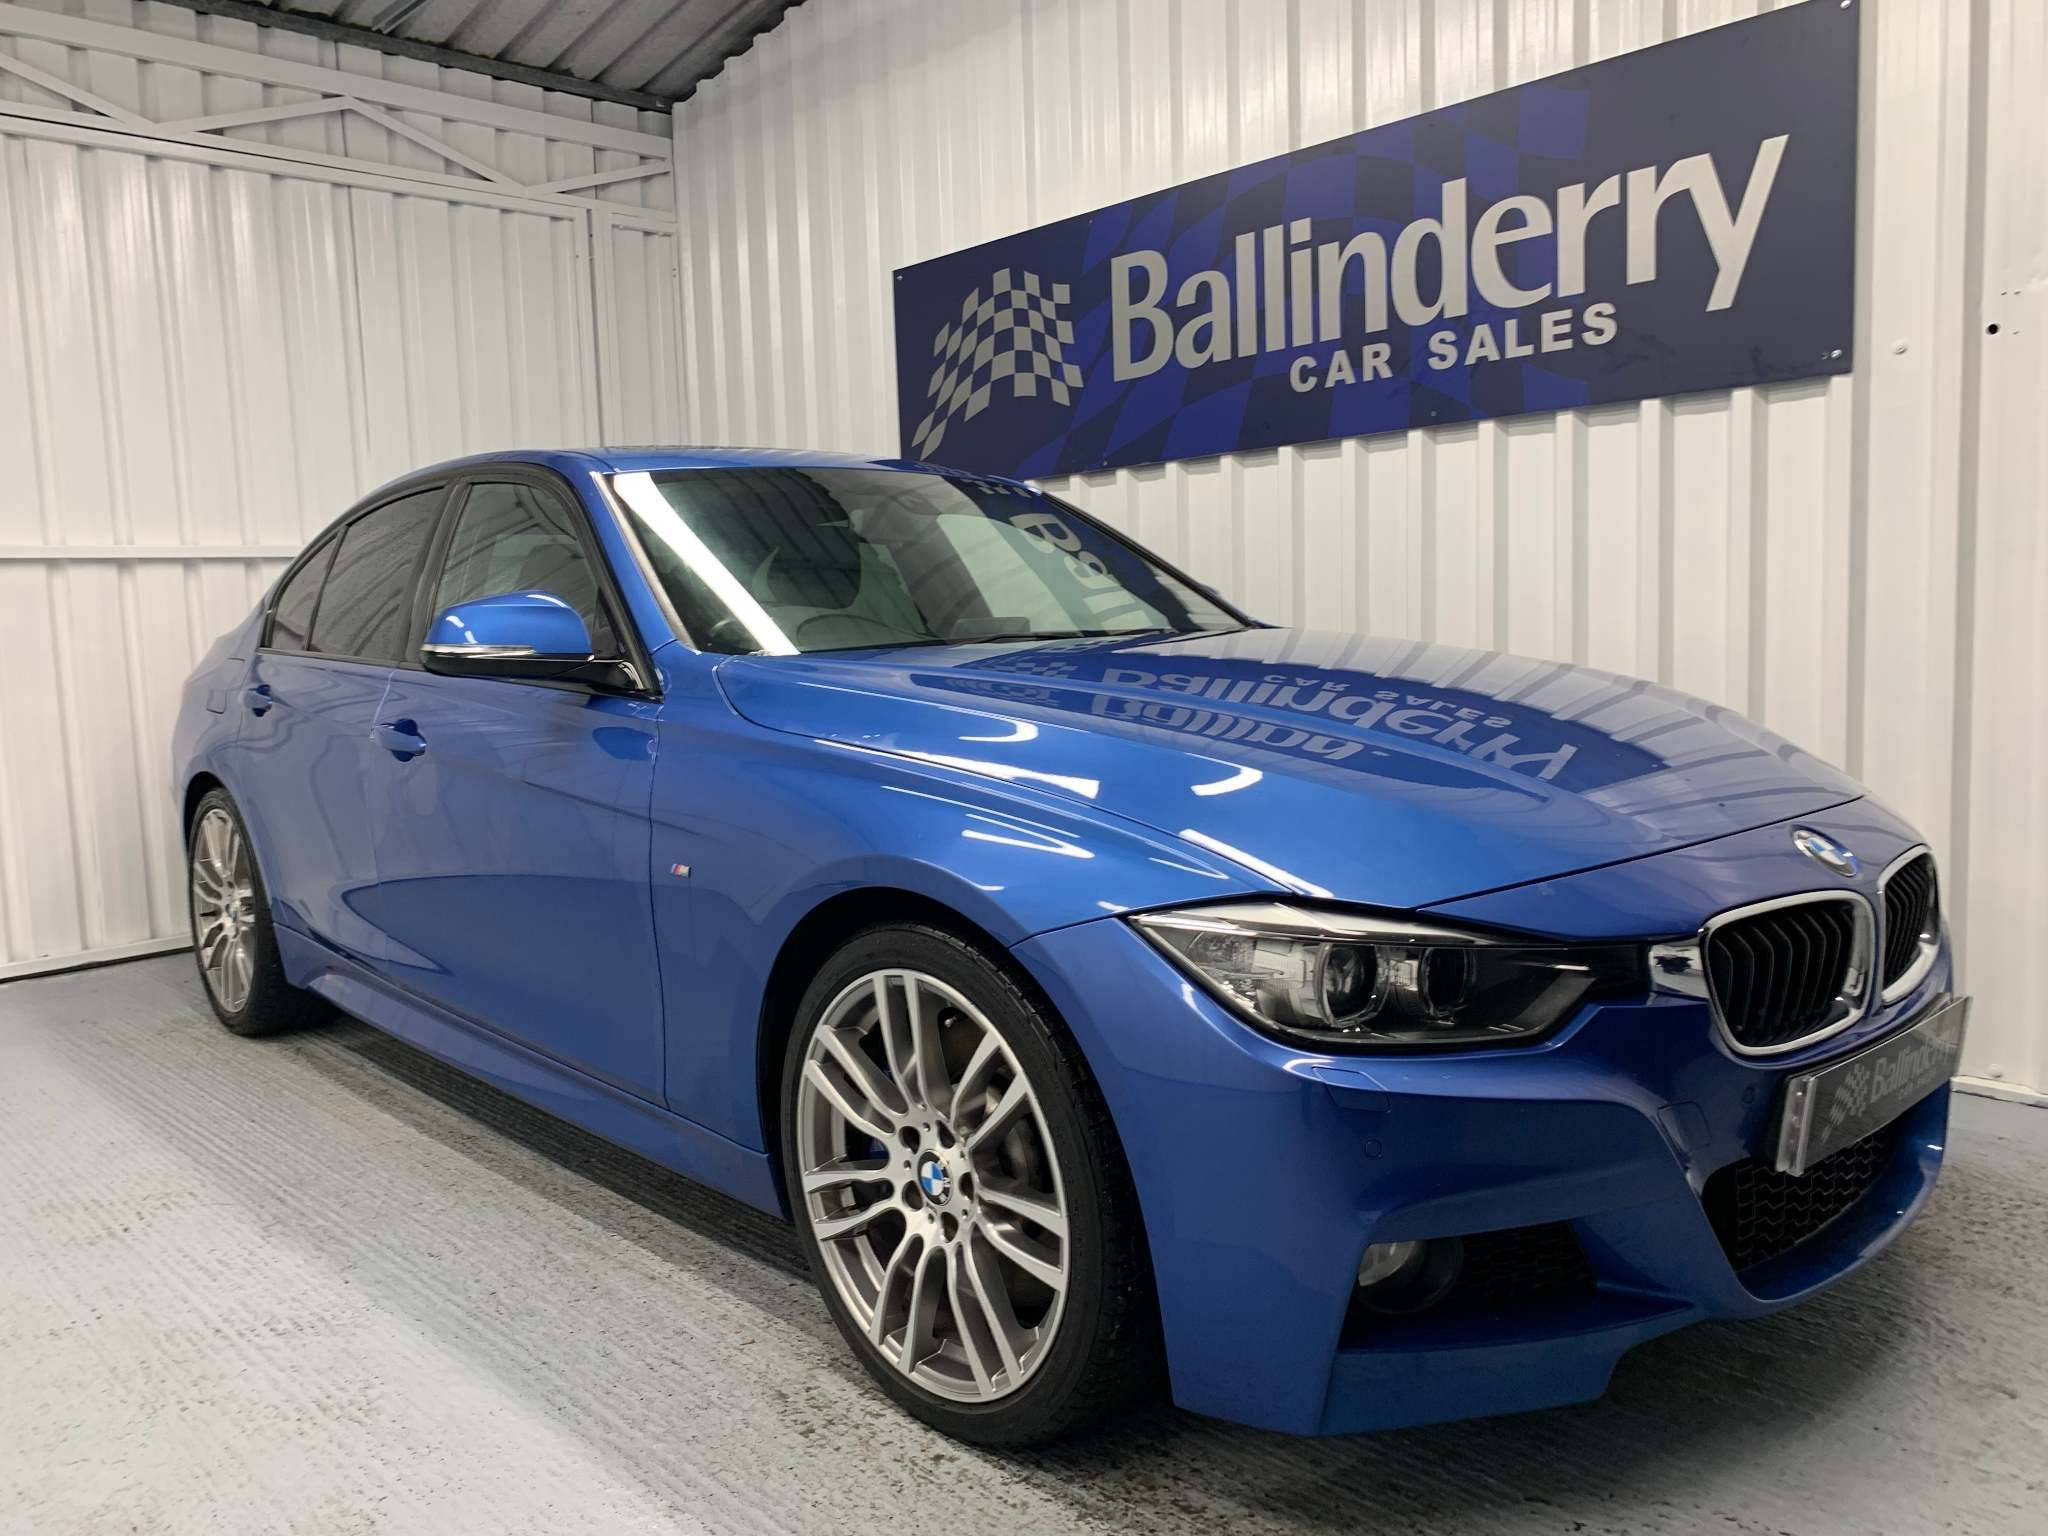 2014 BMW 3 Series 3.0 335i M Sport (s/s) Petrol Manual GLASS ROOF- ELECTRIC MEM SEATS – Ballinderry Car Sales Moira